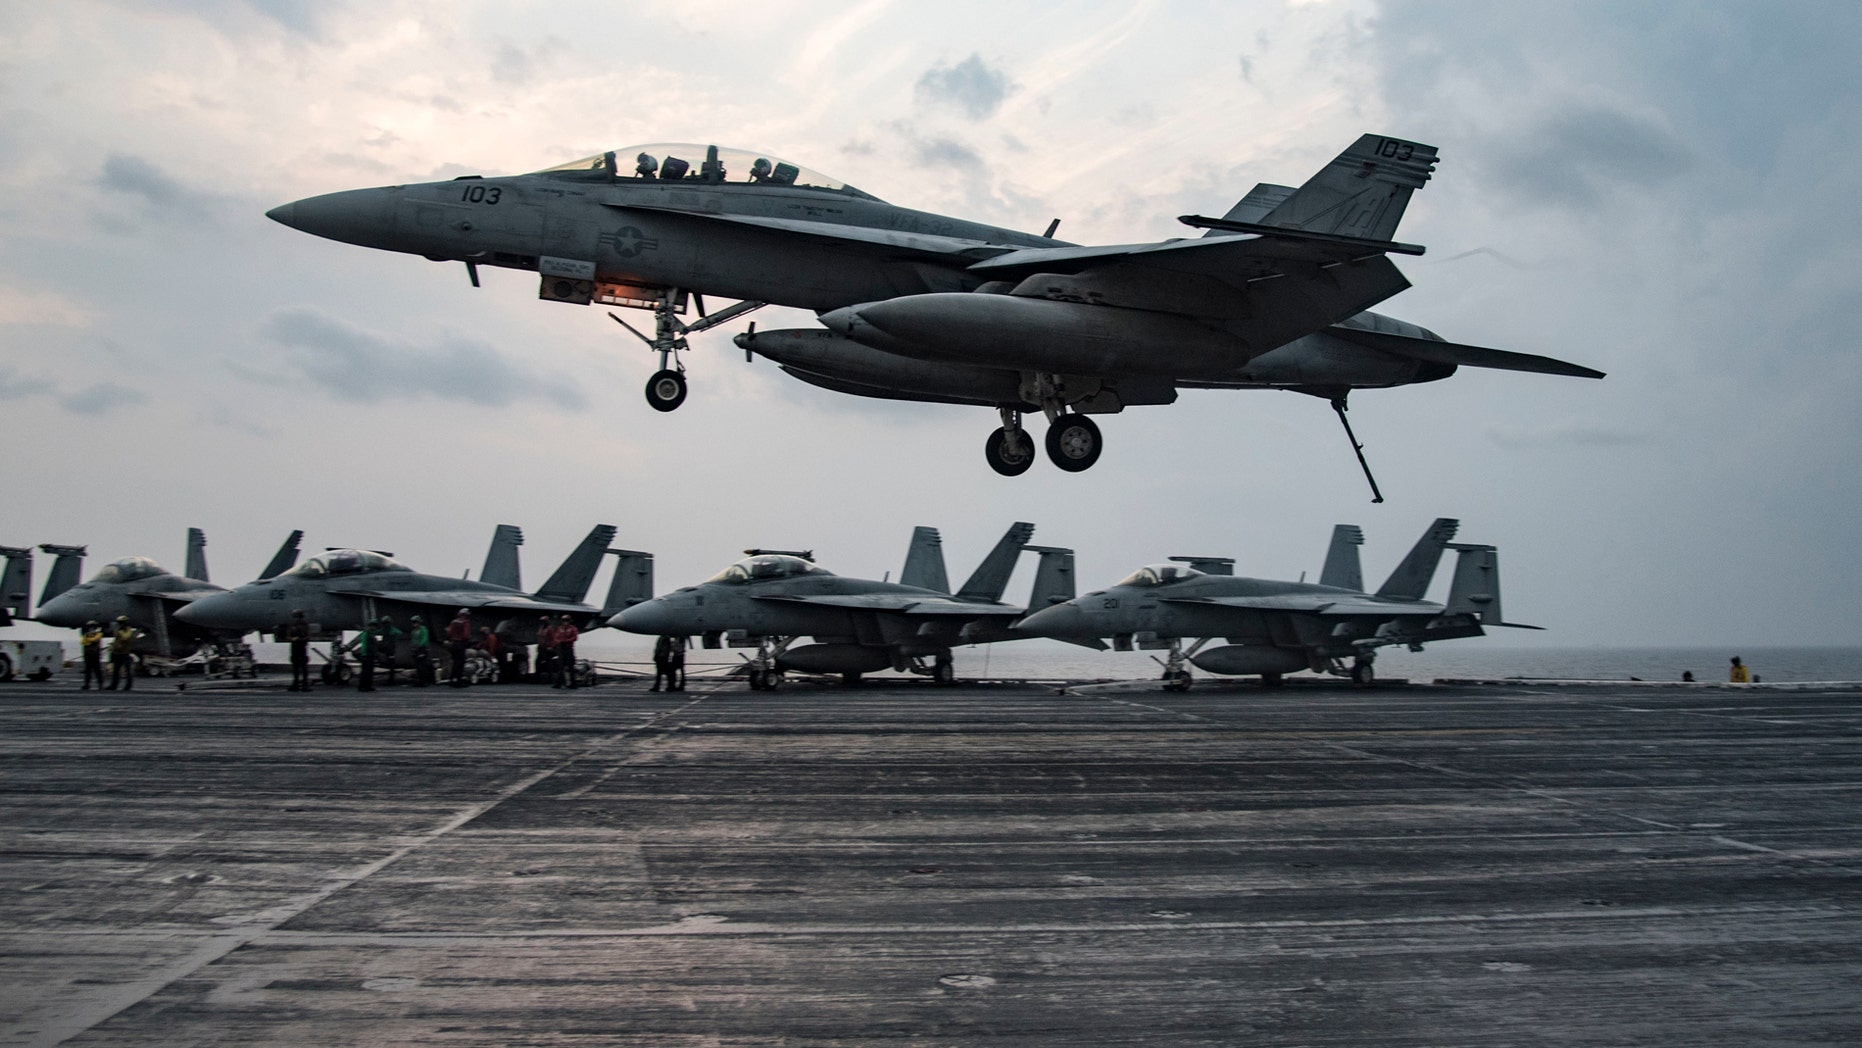 File photo - An F/A-18 F Super Hornet assigned to the Fighting Swordsmen of Strike Fighter Squadron (VFA) 32 prepares to make an arrested landing on the flight deck of the aircraft carrier USS Dwight D. Eisenhower (CVN 69) (Ike) in the Arabian Gulf.